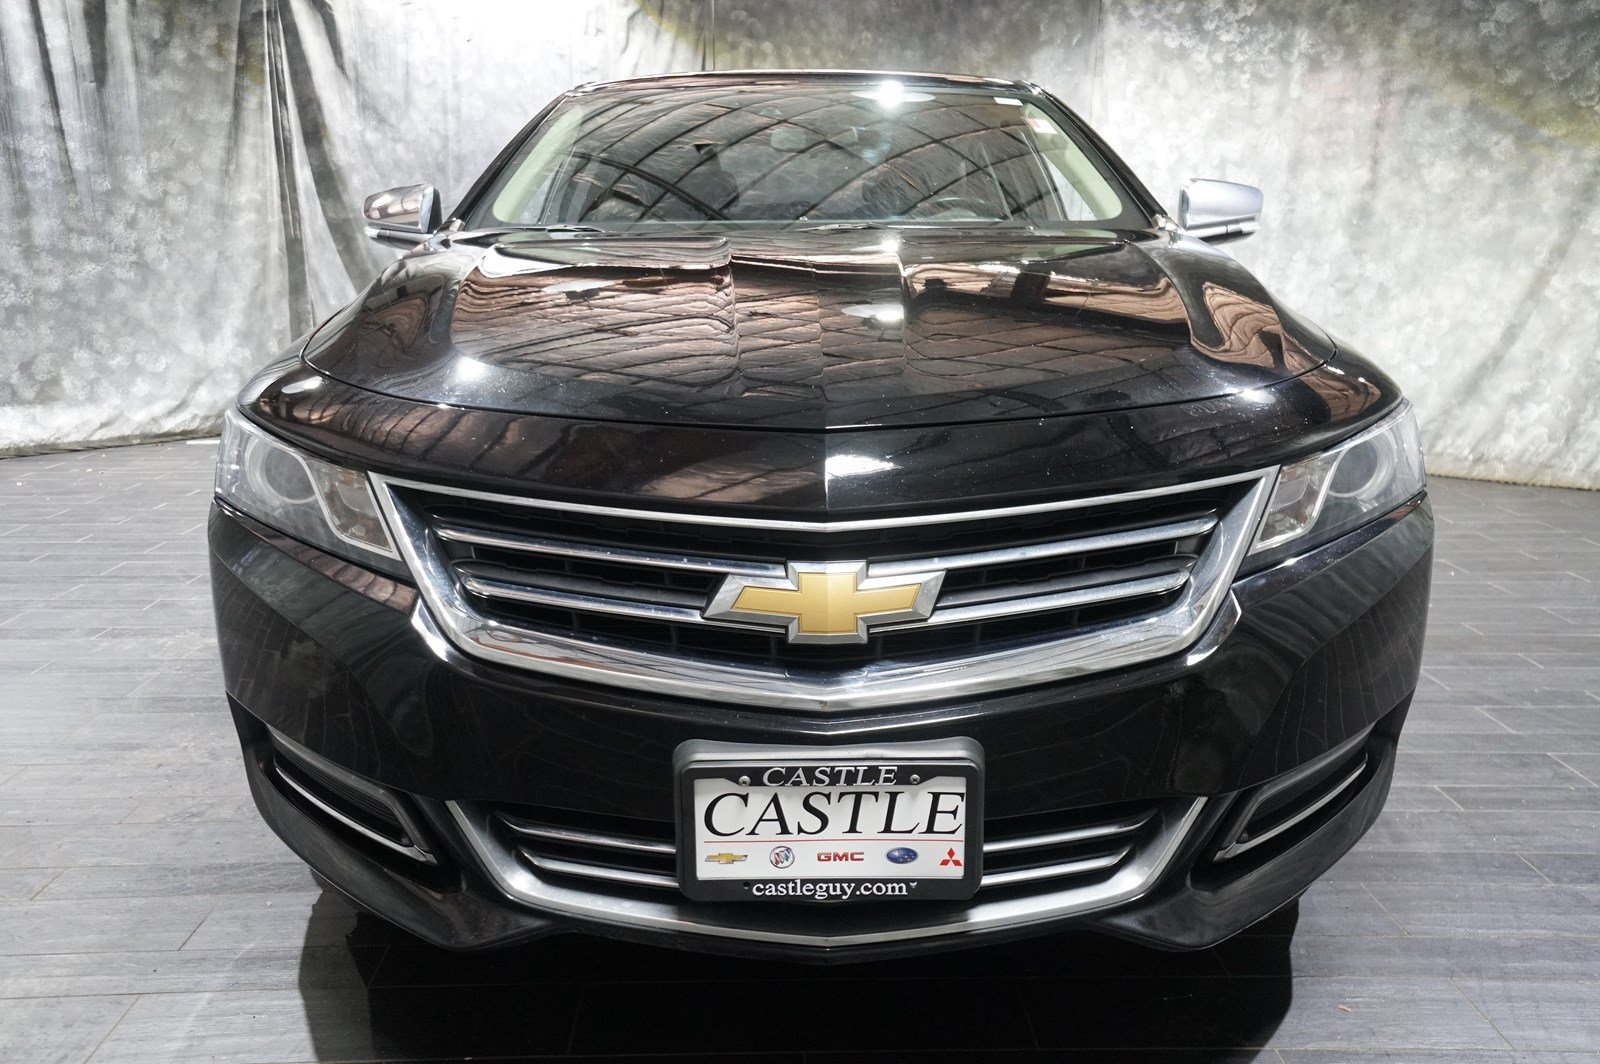 pre-owned 2015 chevrolet impala ltz 4dr car in villa park #g3011